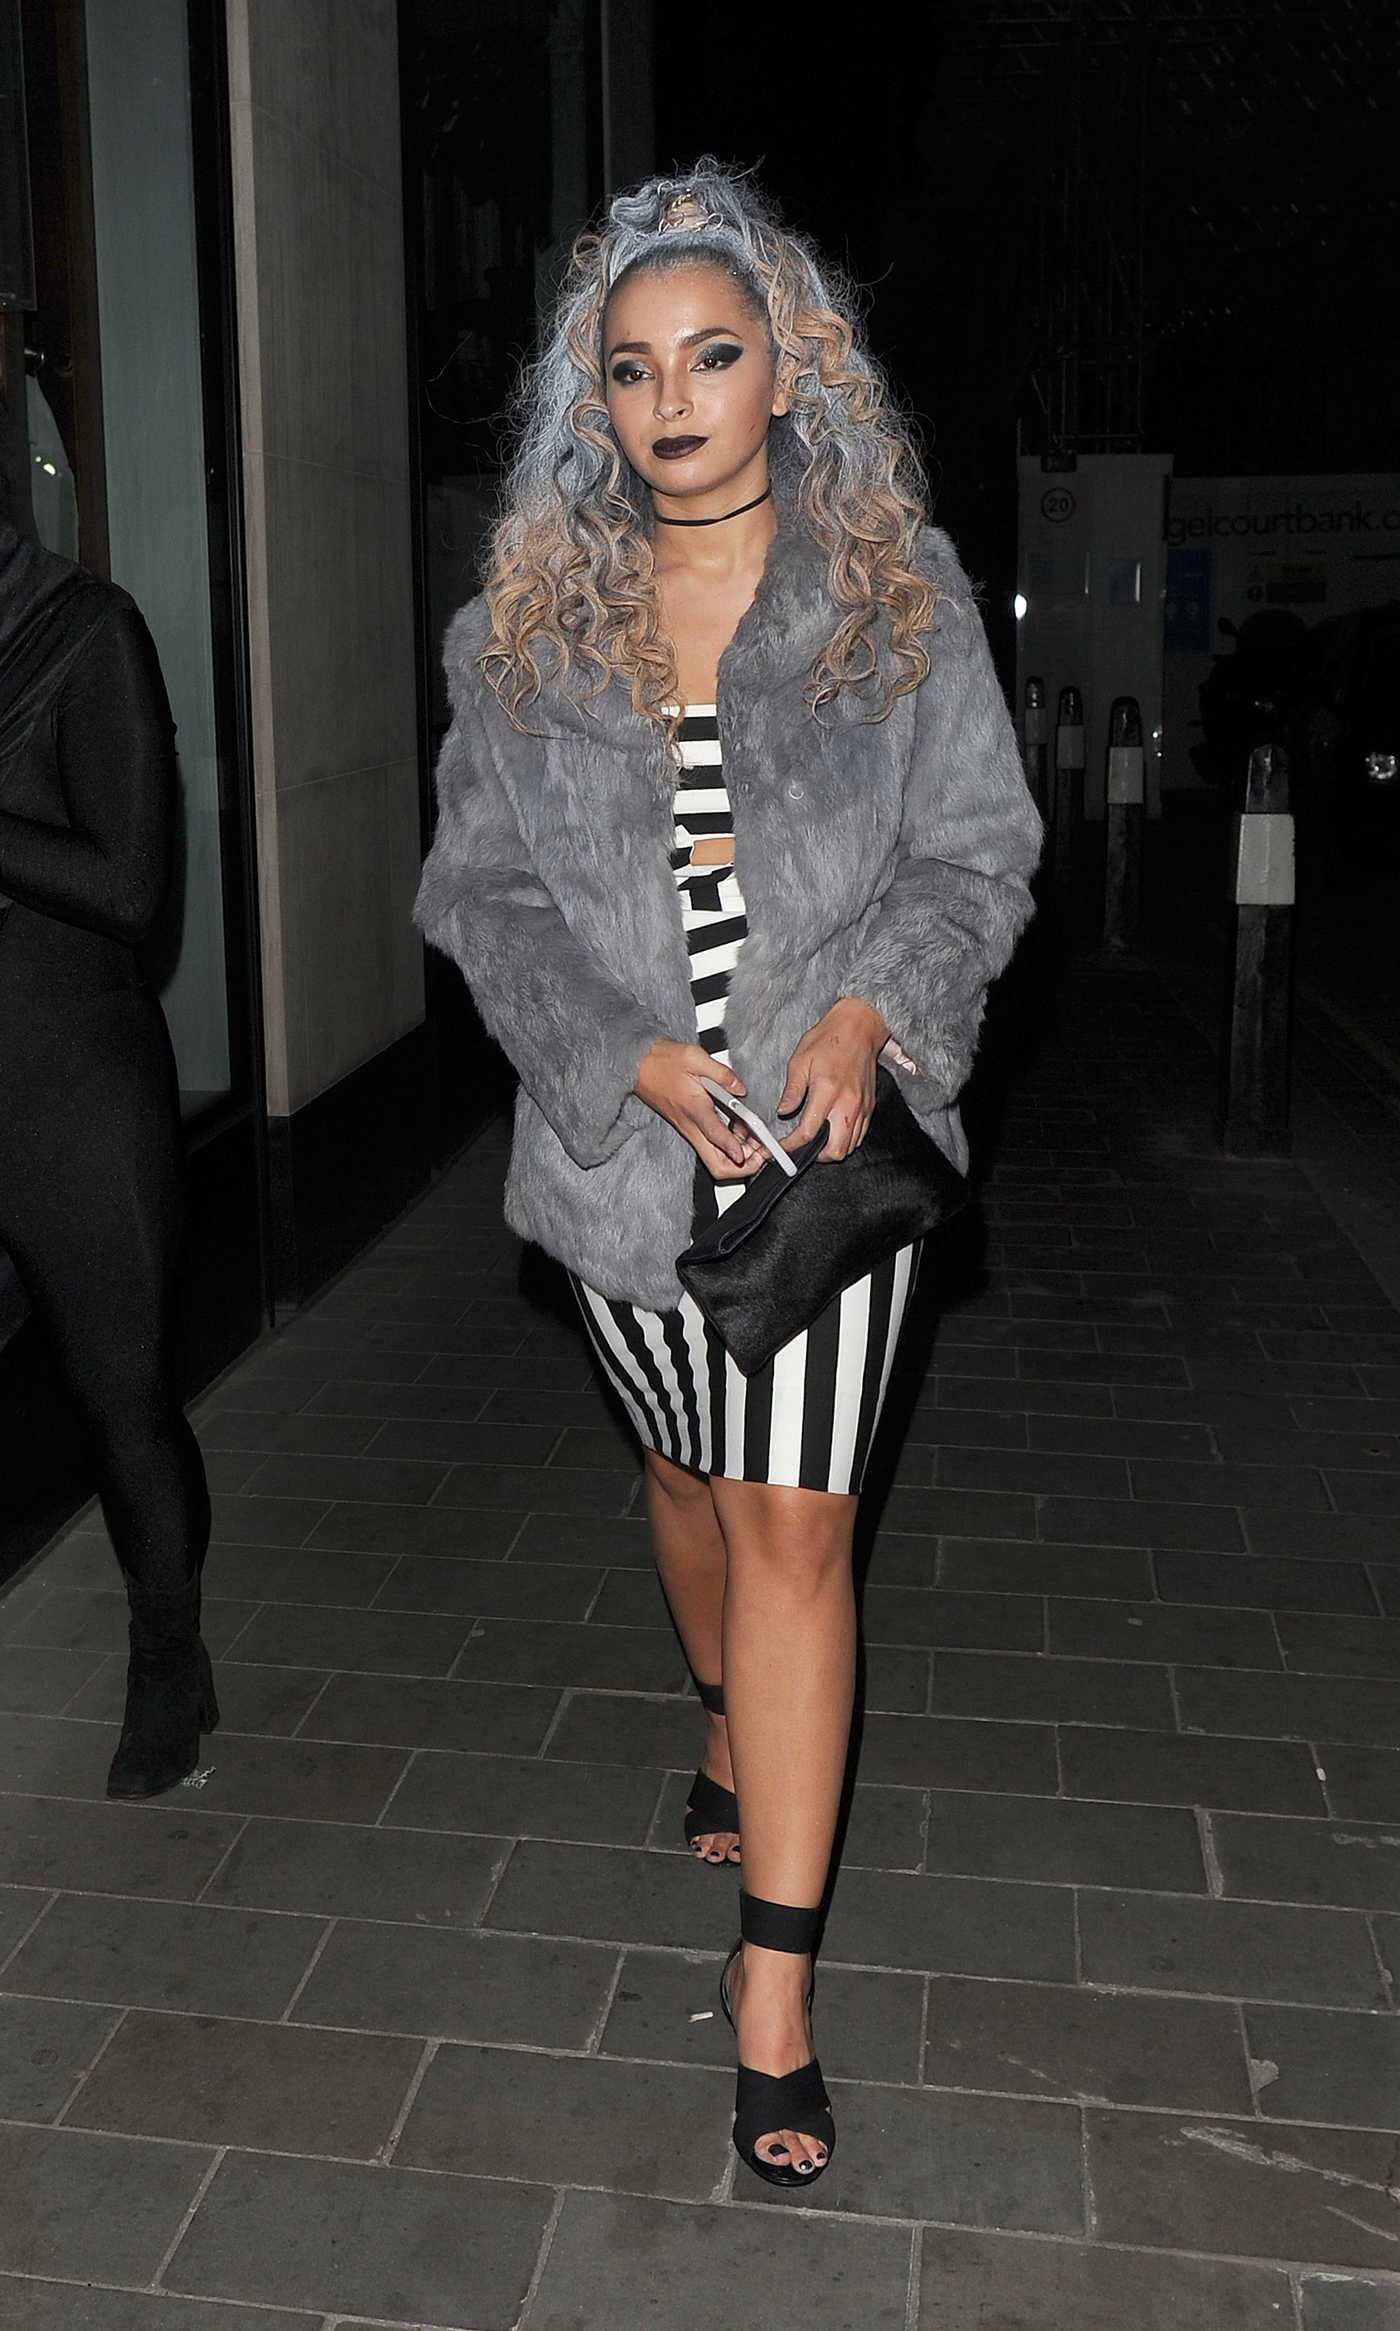 Ella Eyre Arrives at the M Restaurant Halloween Party 10/29/2016